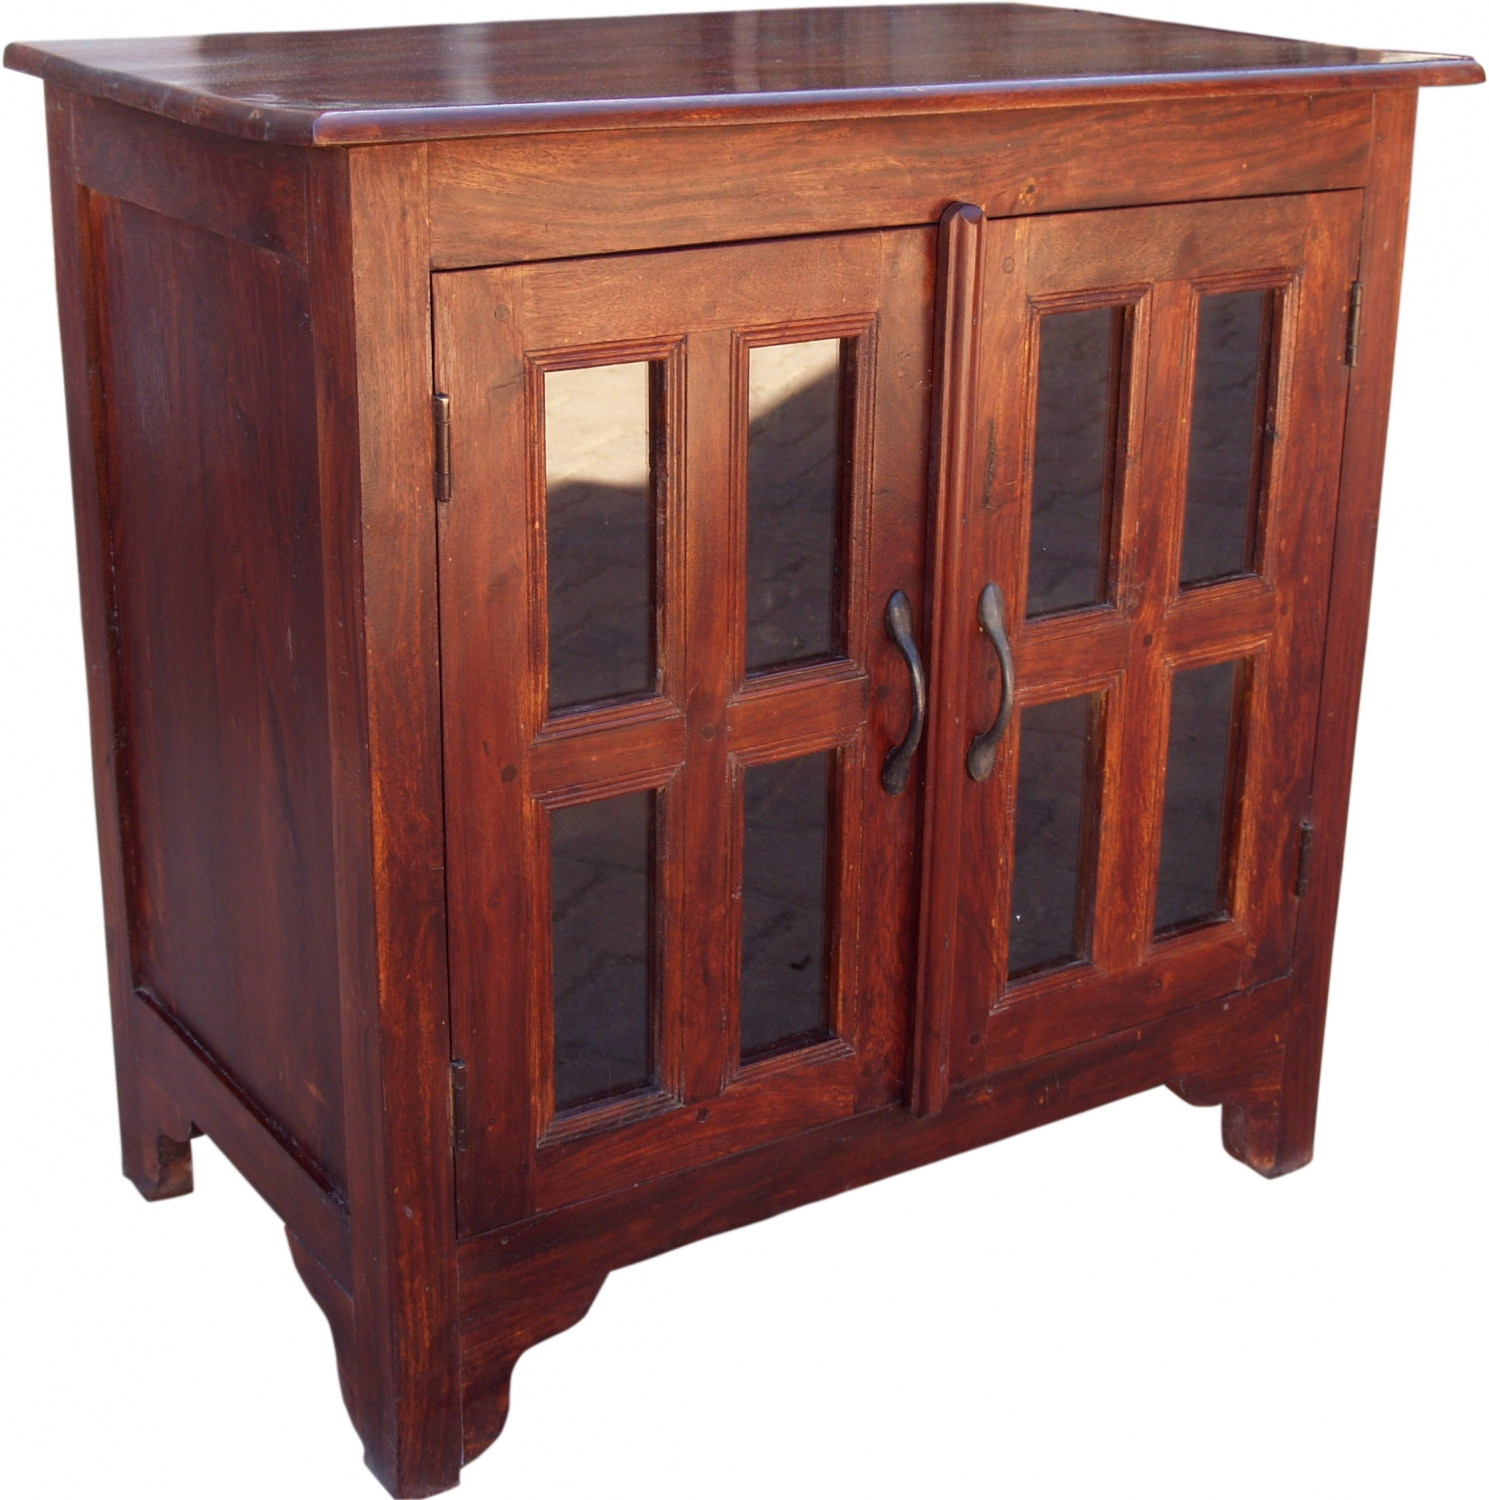 Vitrine Kolonialstil Television Cabinet Commode Sideboard Made Of Solid Wood Model 7 76x76x46 Cm